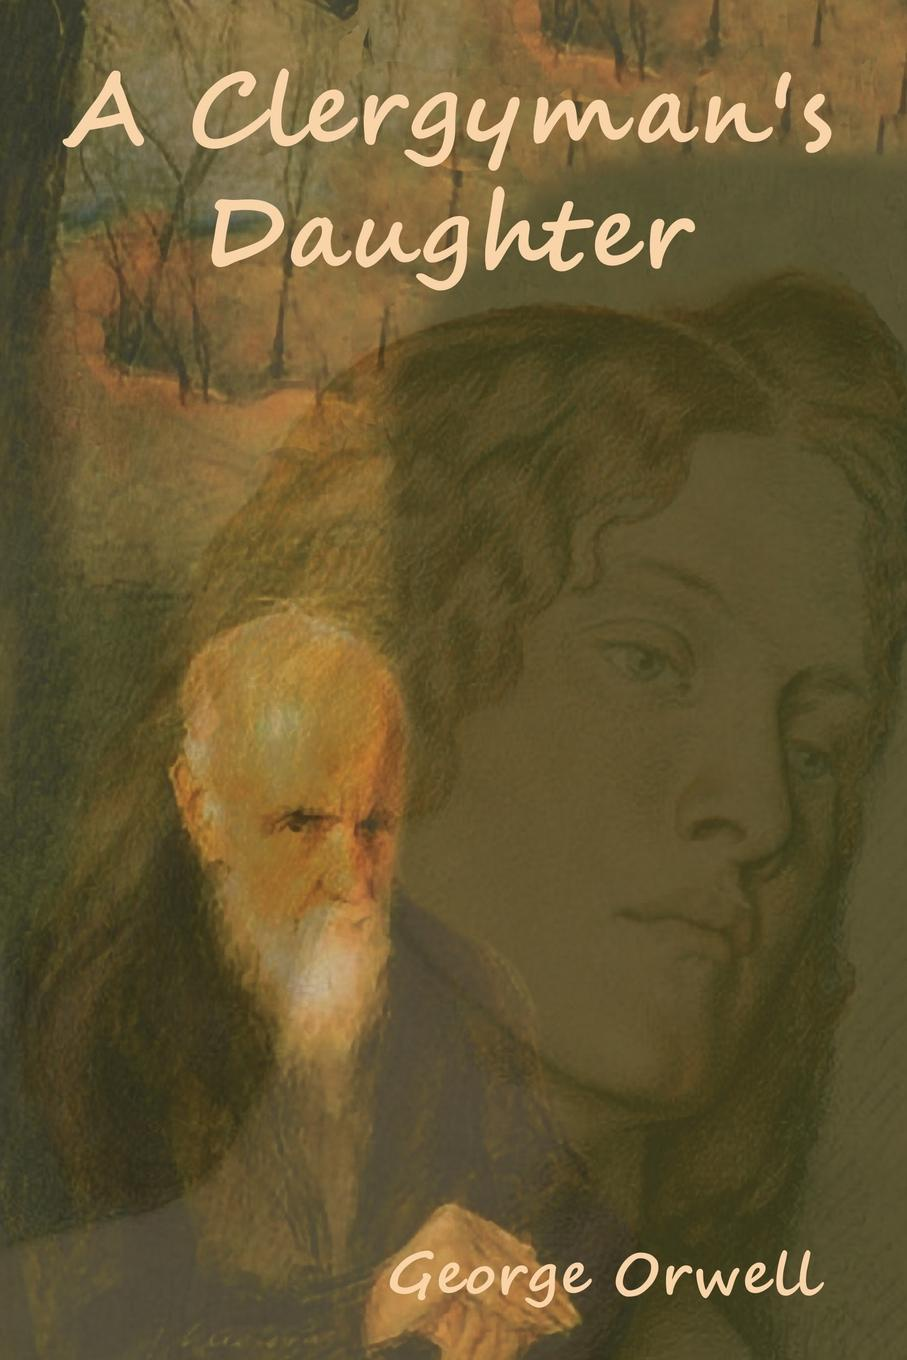 George Orwell A Clergyman's Daughter ginny aiken a daughter s homecoming